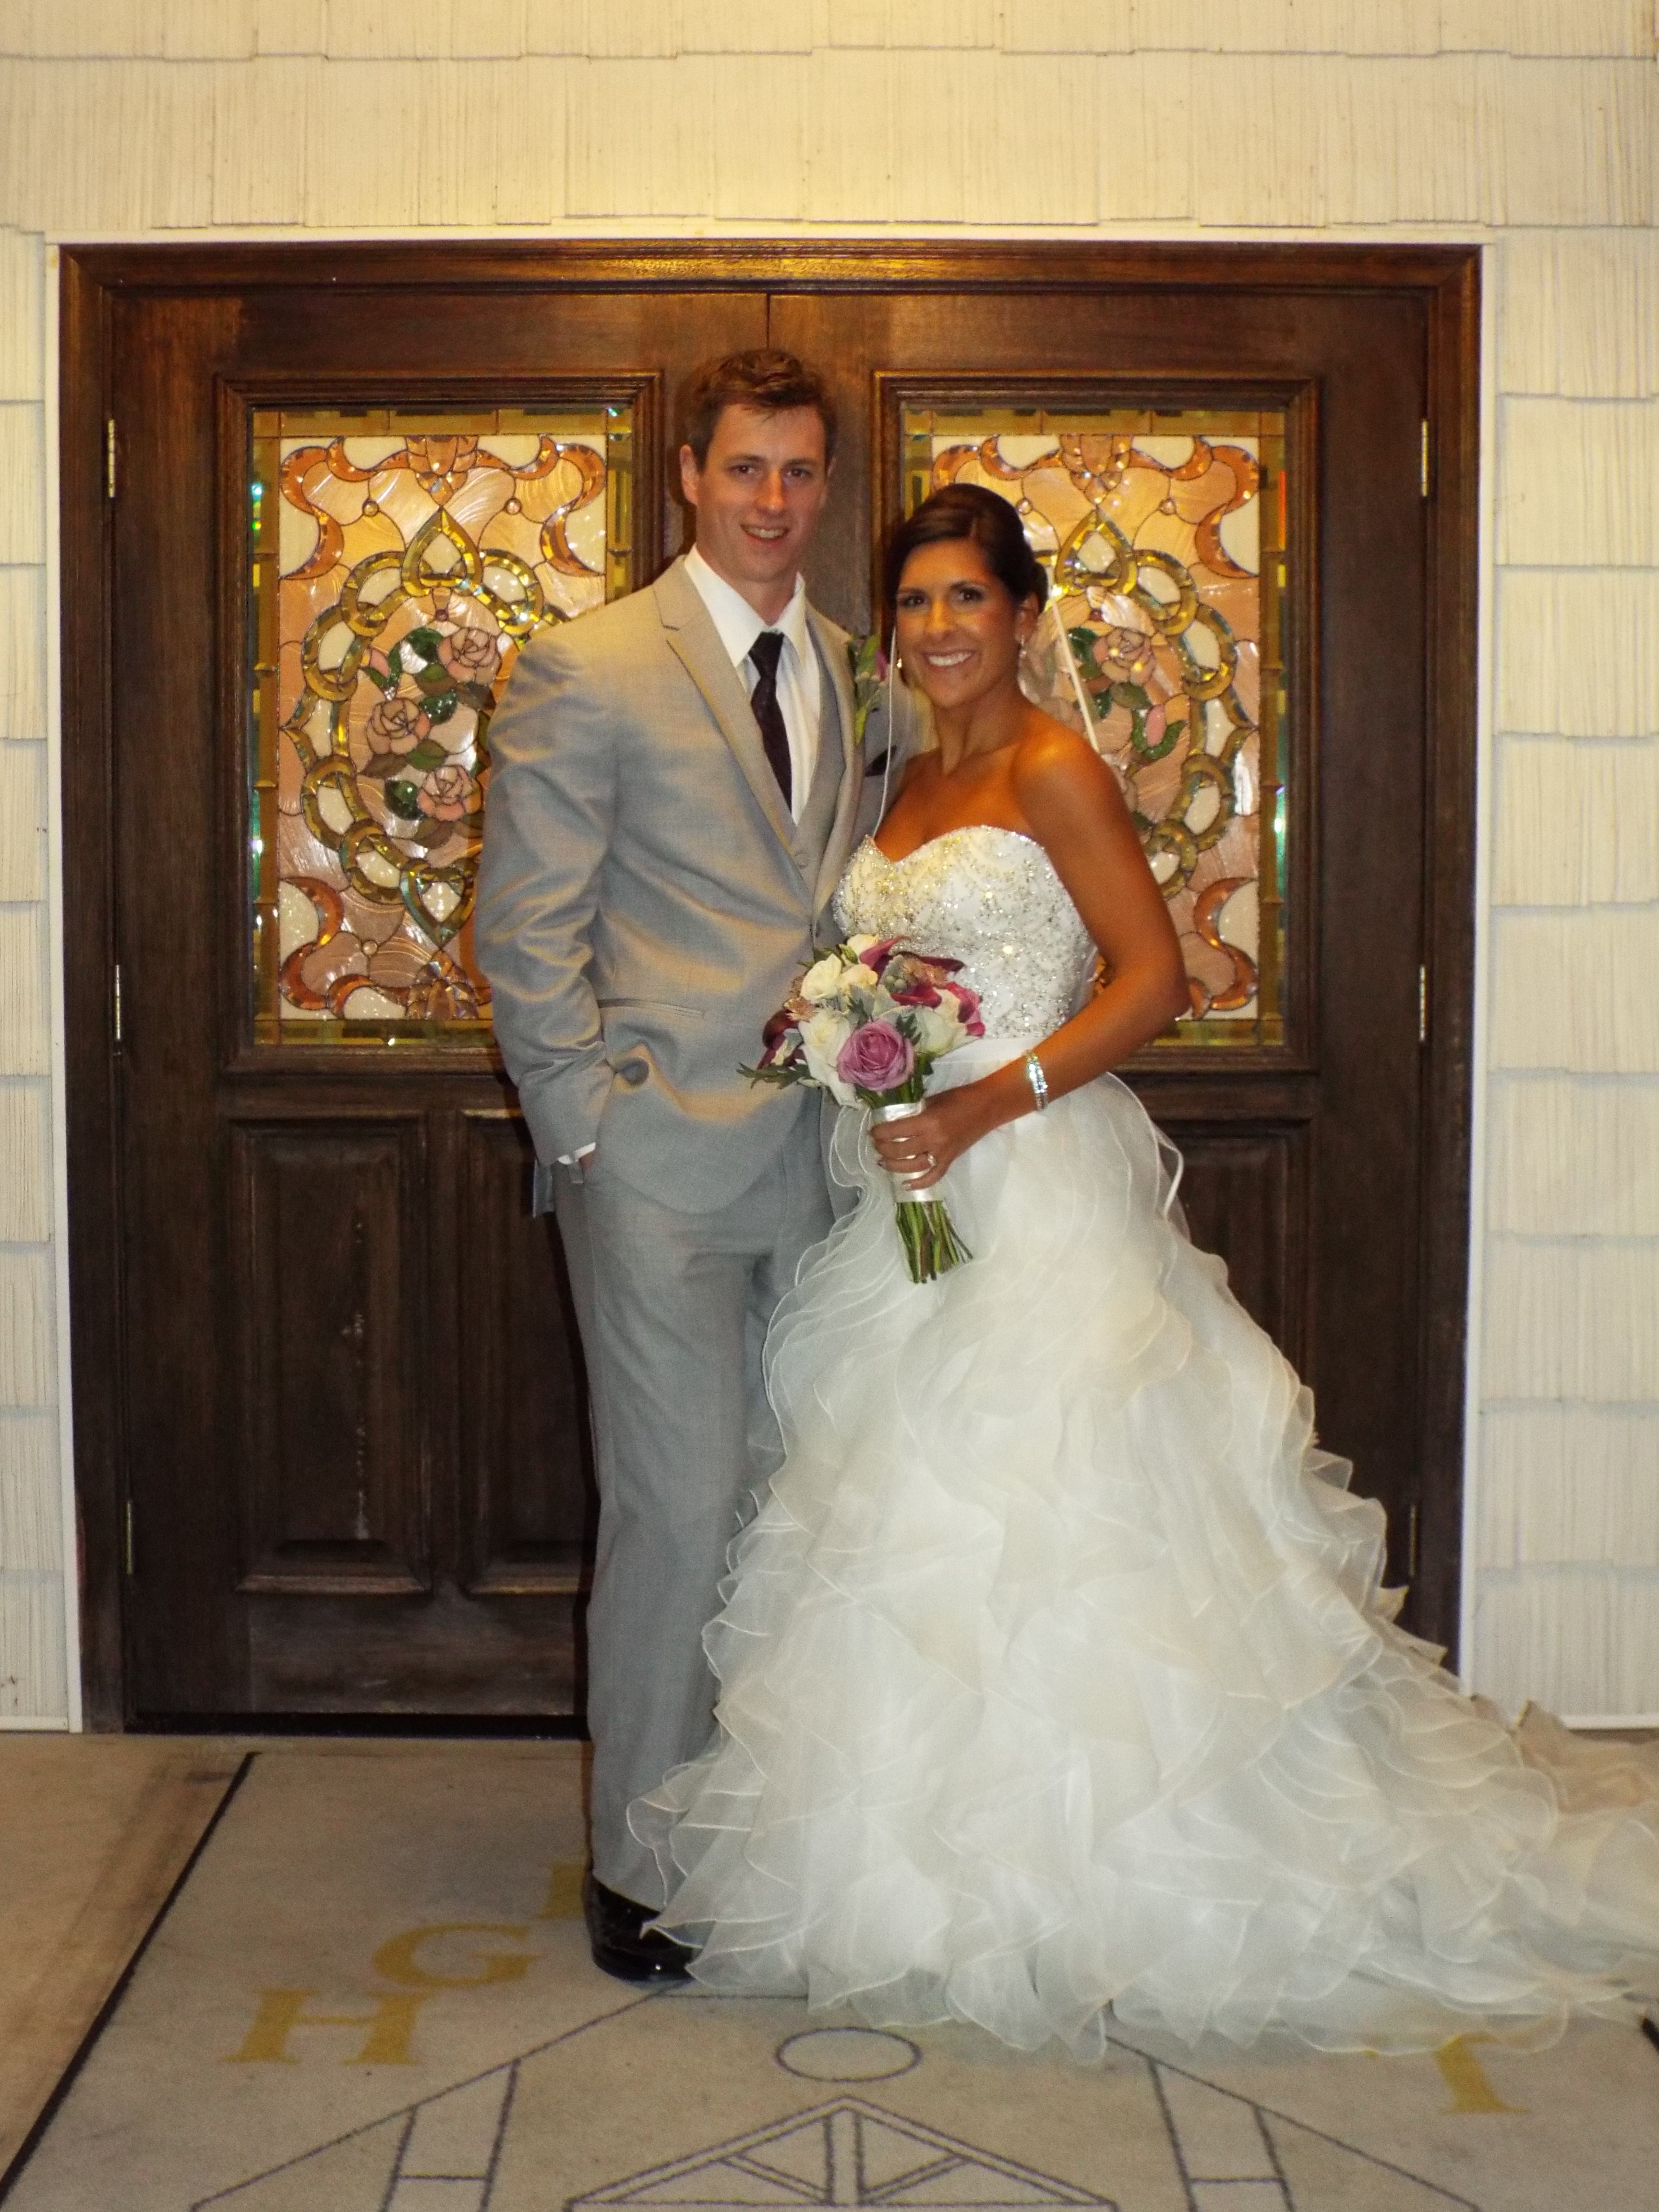 Ryan Guertin Class of 2007 and his bride Ashley Volpe on their wedding day standing in front of an ornate door